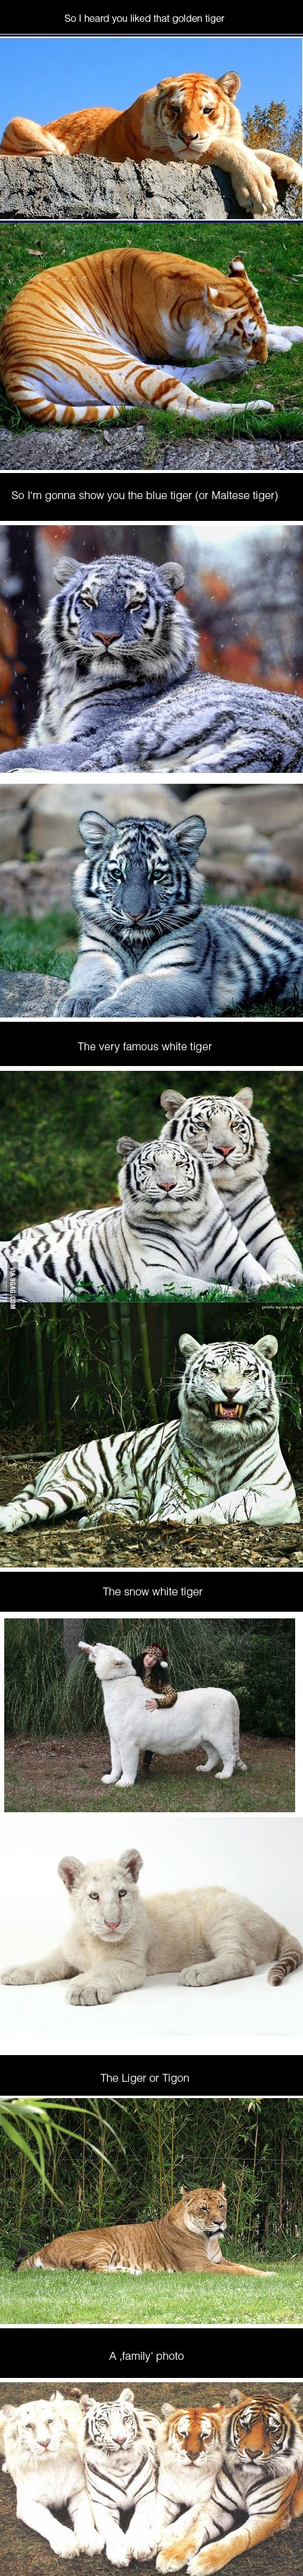 I heard you like Tigers